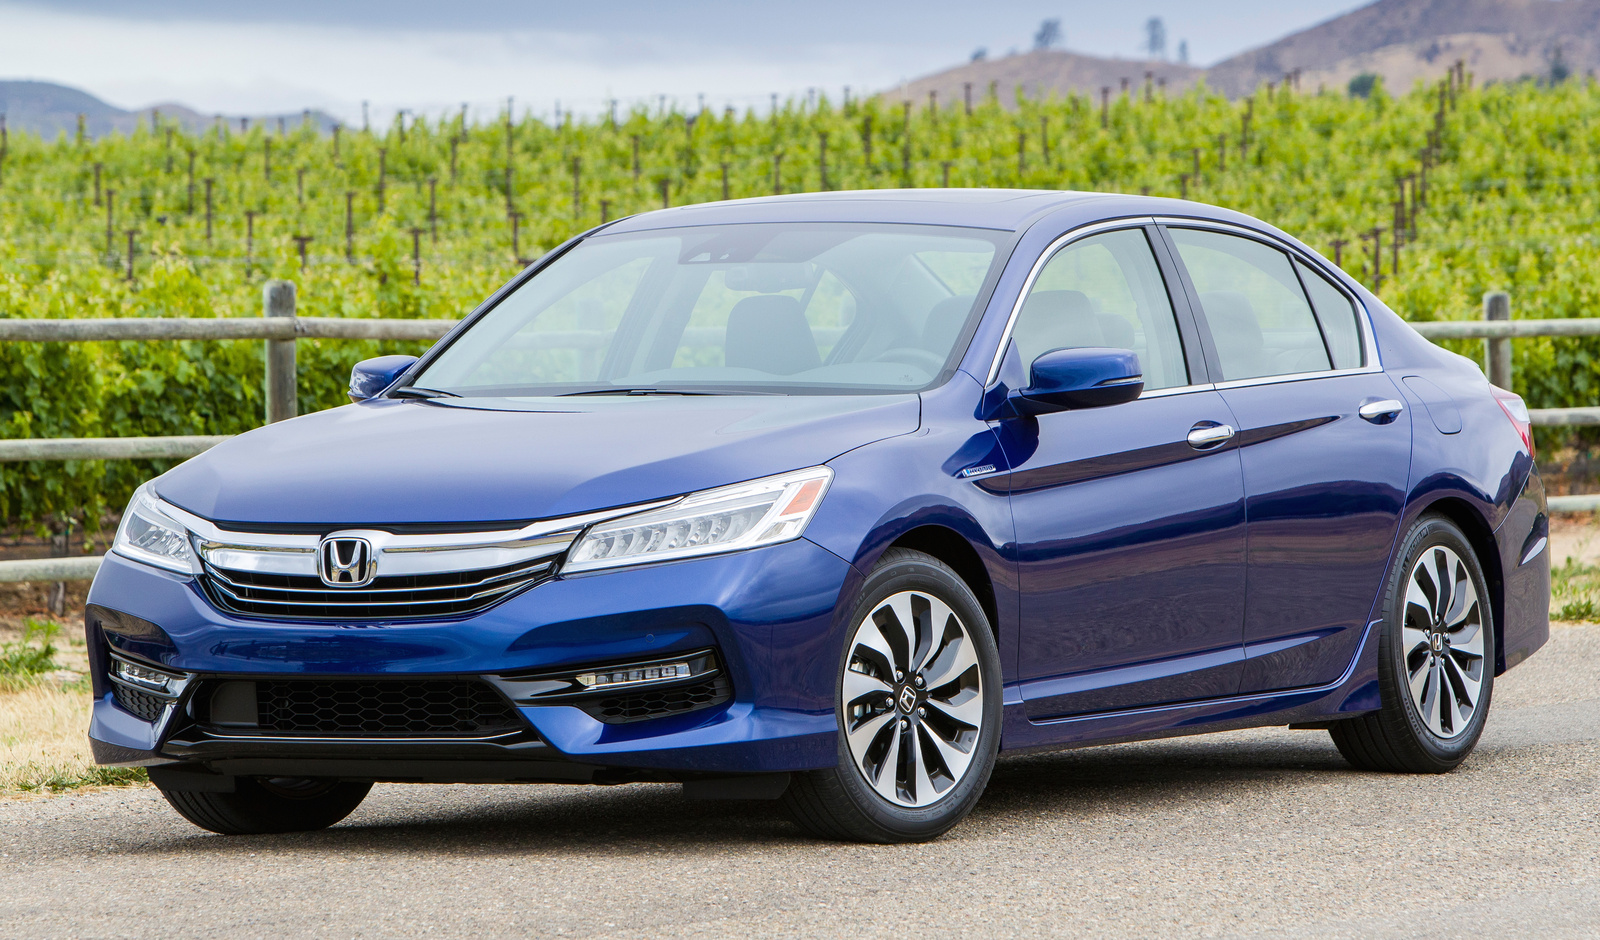 Honda Accord Hybrid Overview CarGurus - Accord vehicle